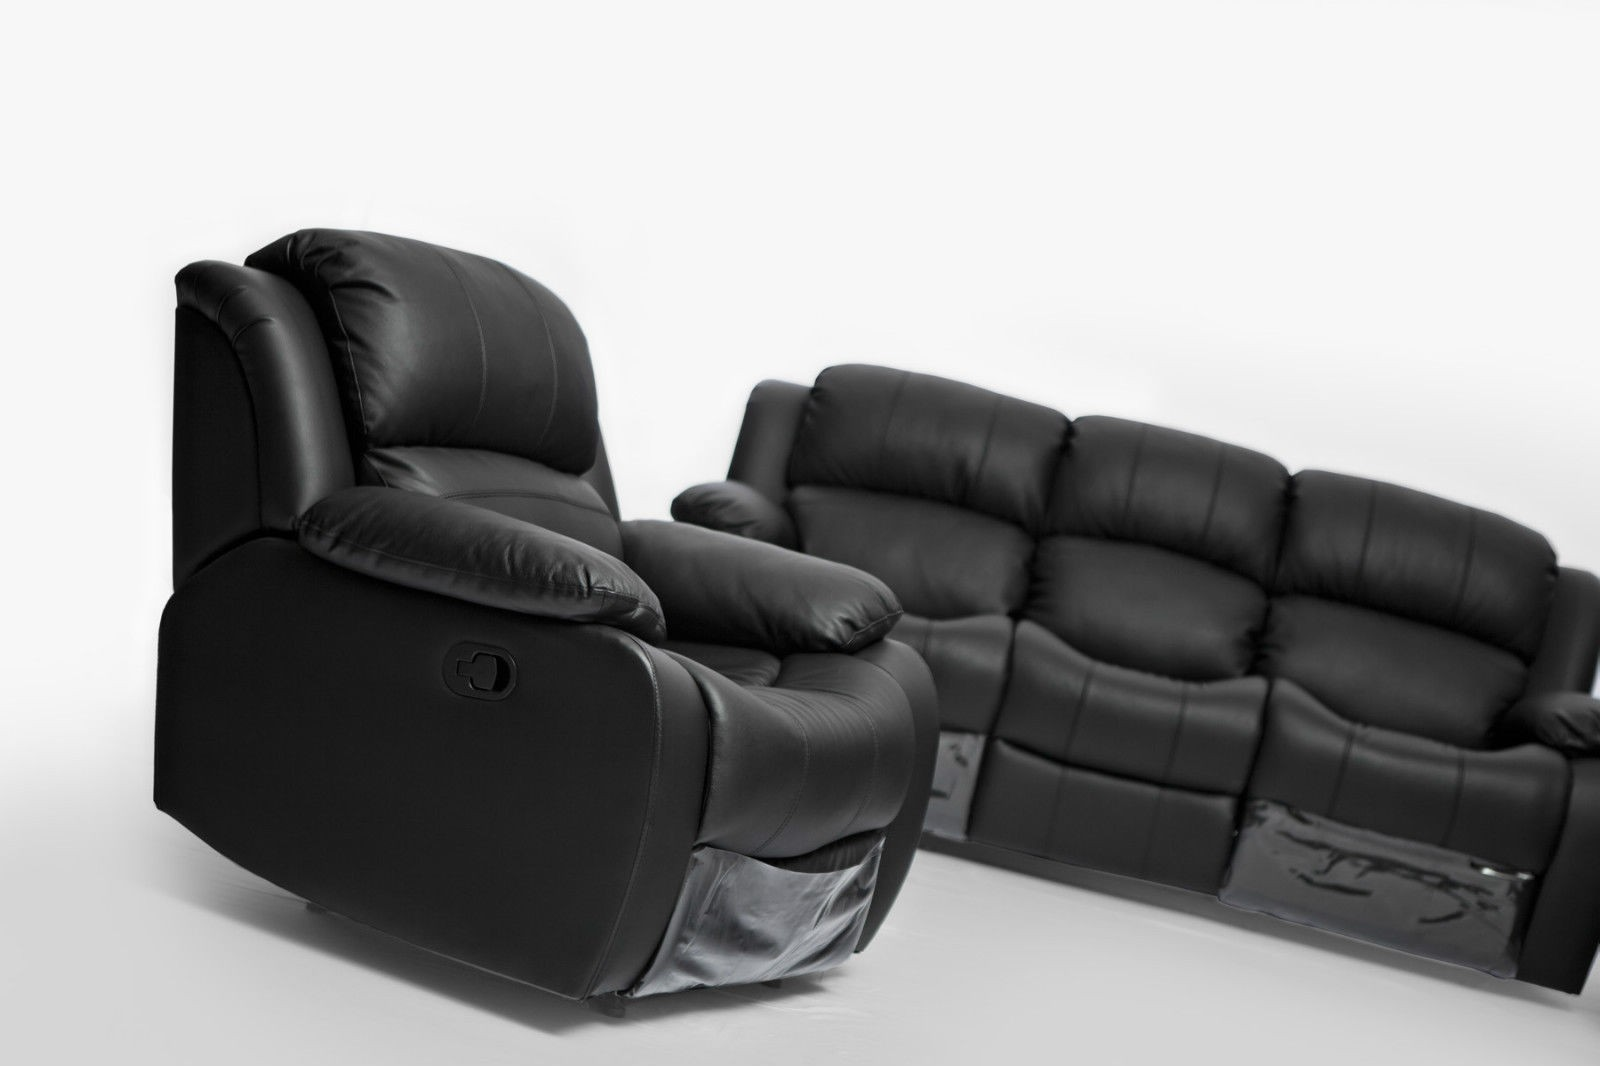 Kacey Brand New Black Leather Single Seater Chair Recliner Couch Lounge Sofa